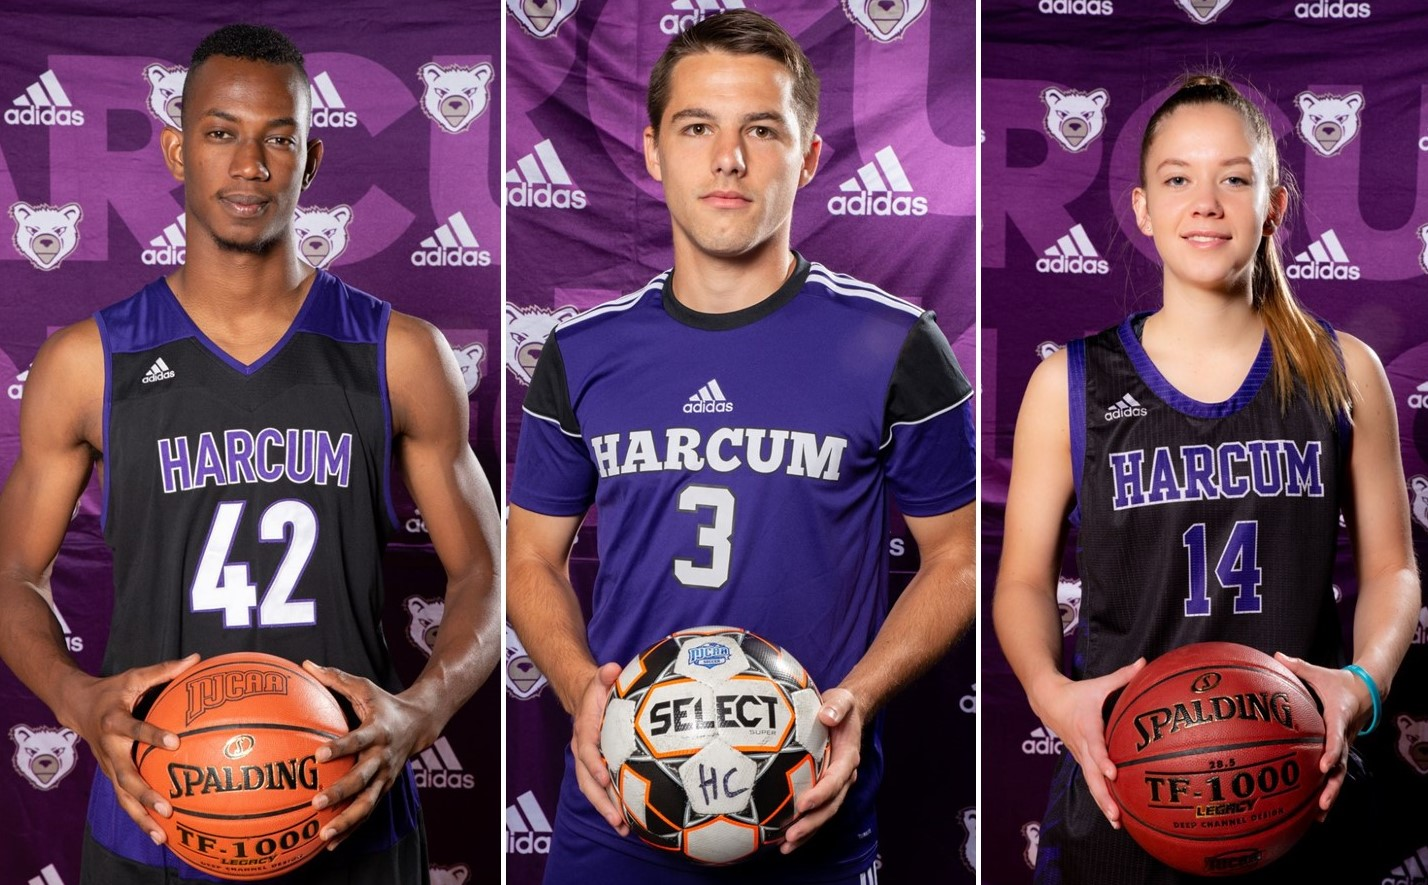 Record Number of Harcum College Student-Athletes Honored Nationally for Their Stellar GPAs